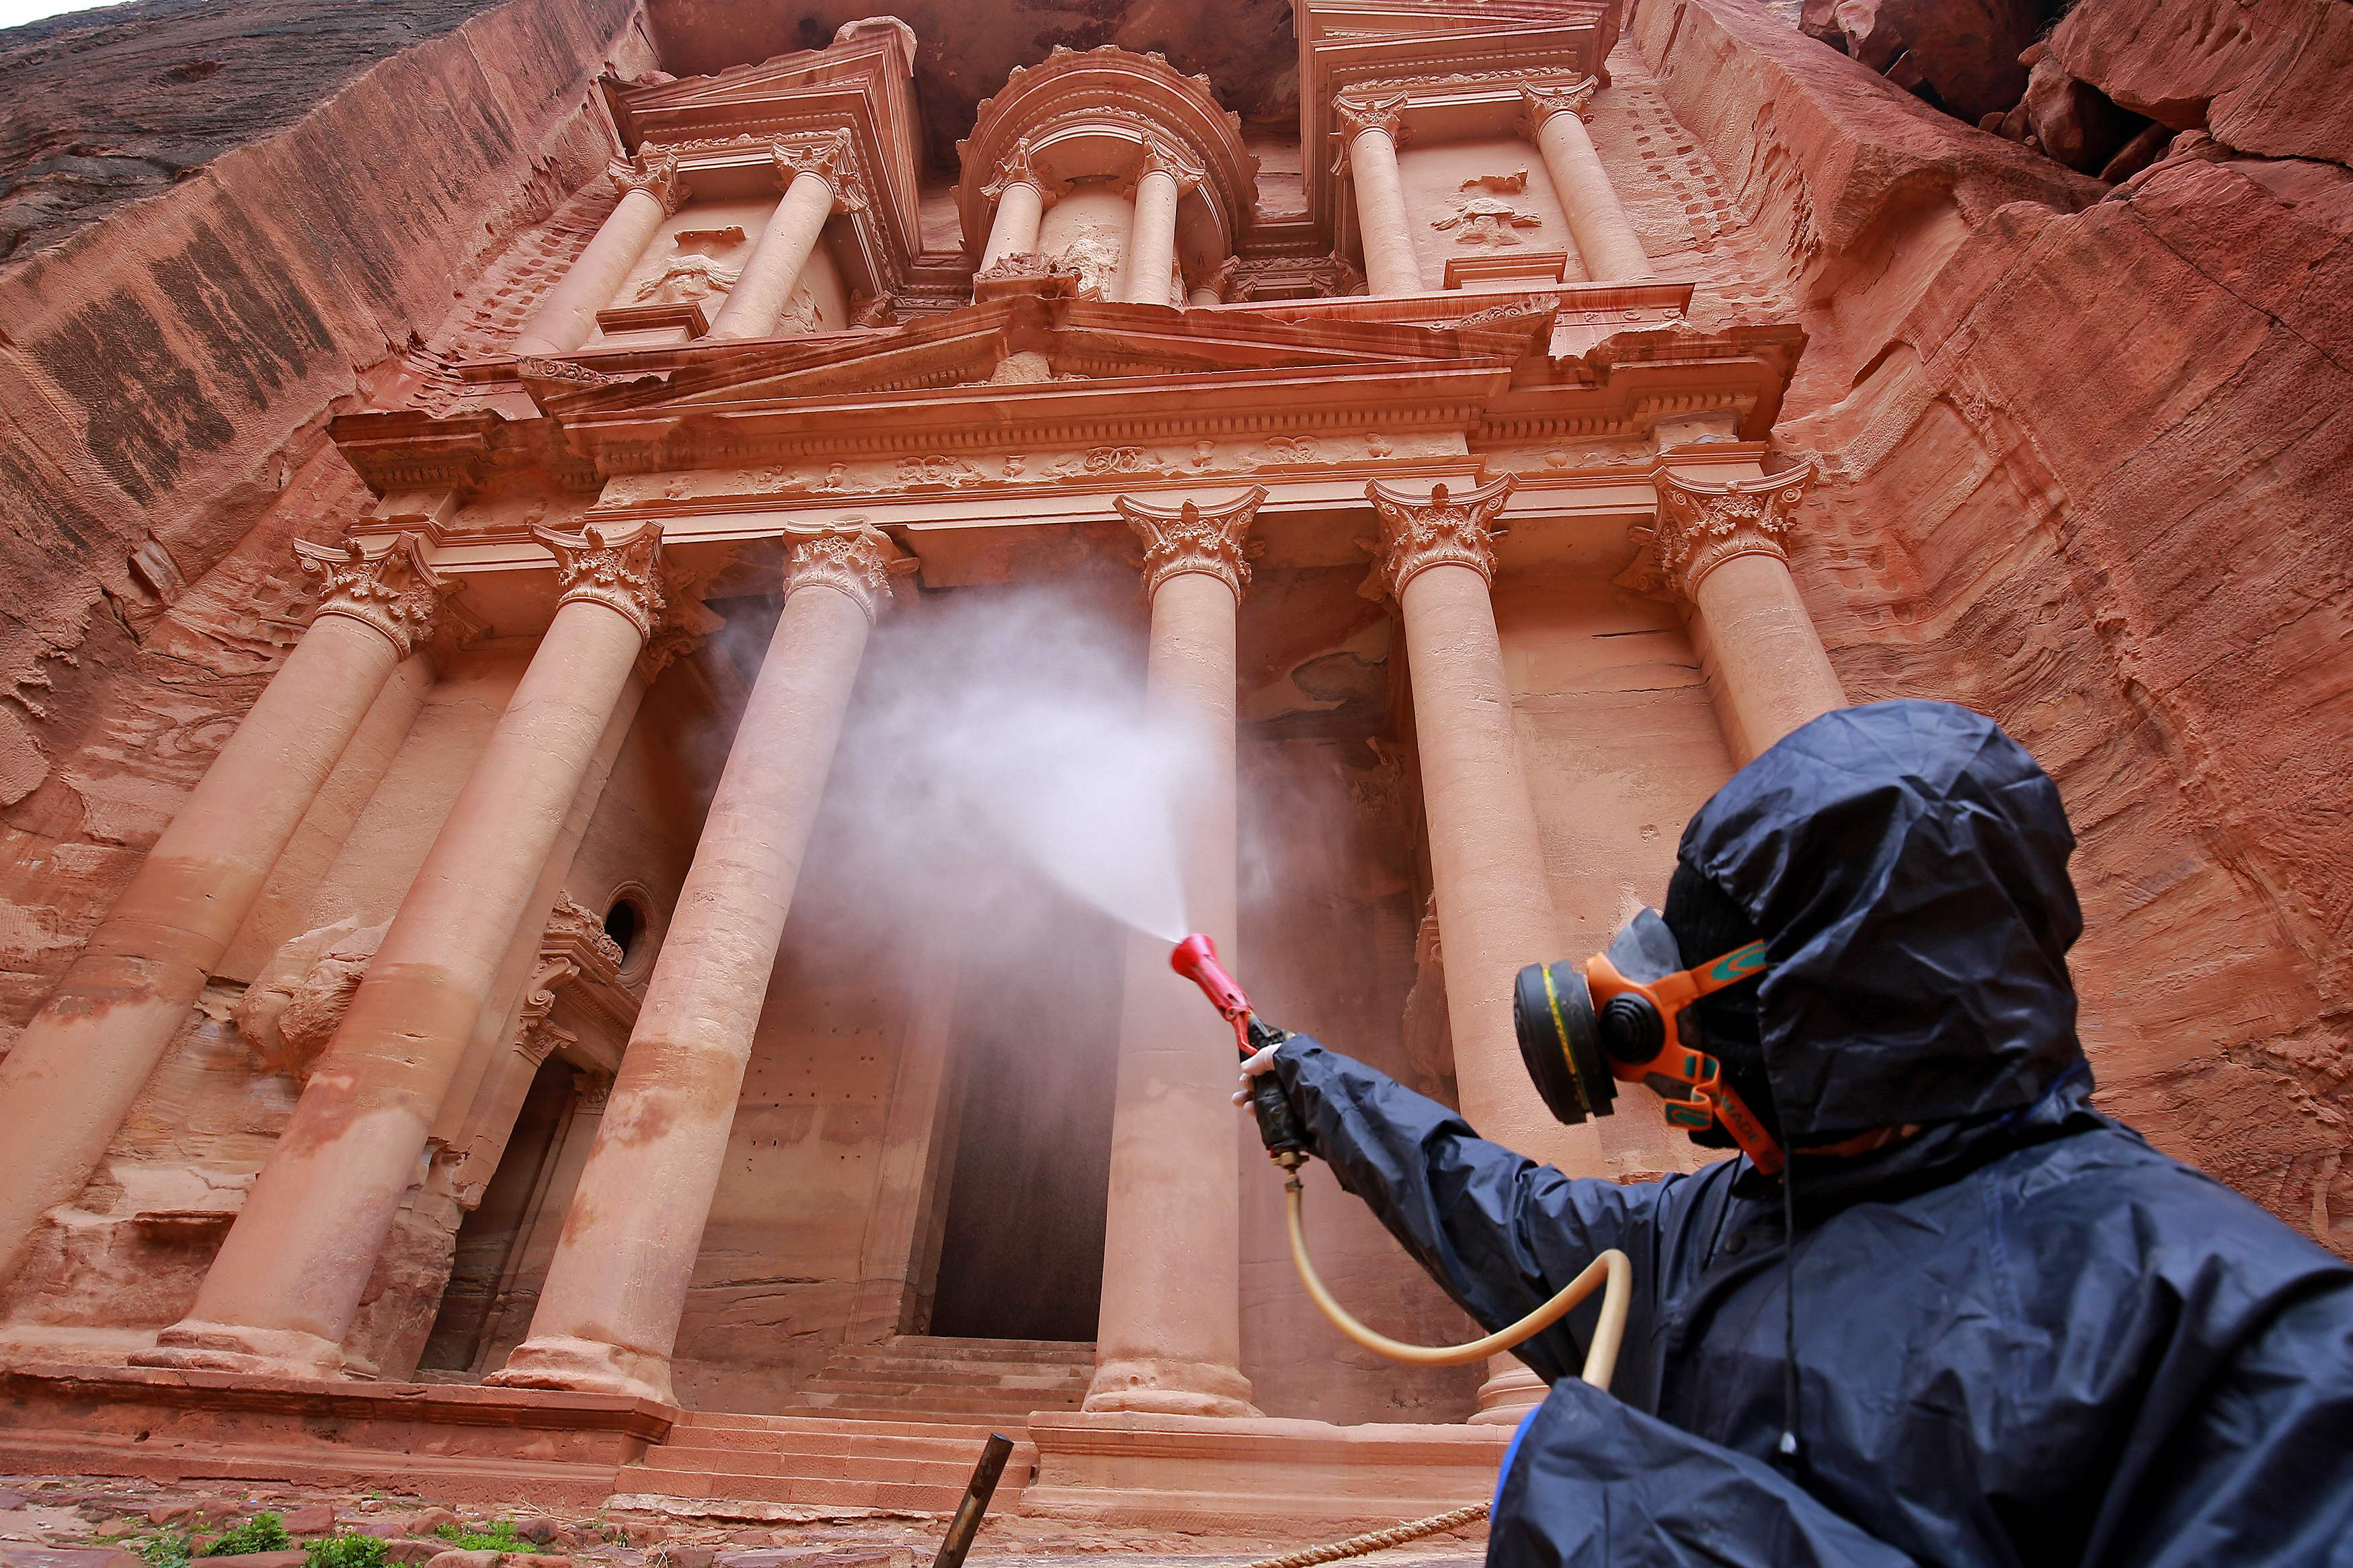 Slide 60 of 113: A worker sprays disinfectant in Jordan's archaeological city of Petra south of the capital Amman on March 17, 2020, to prevent the spread of COVID-19.